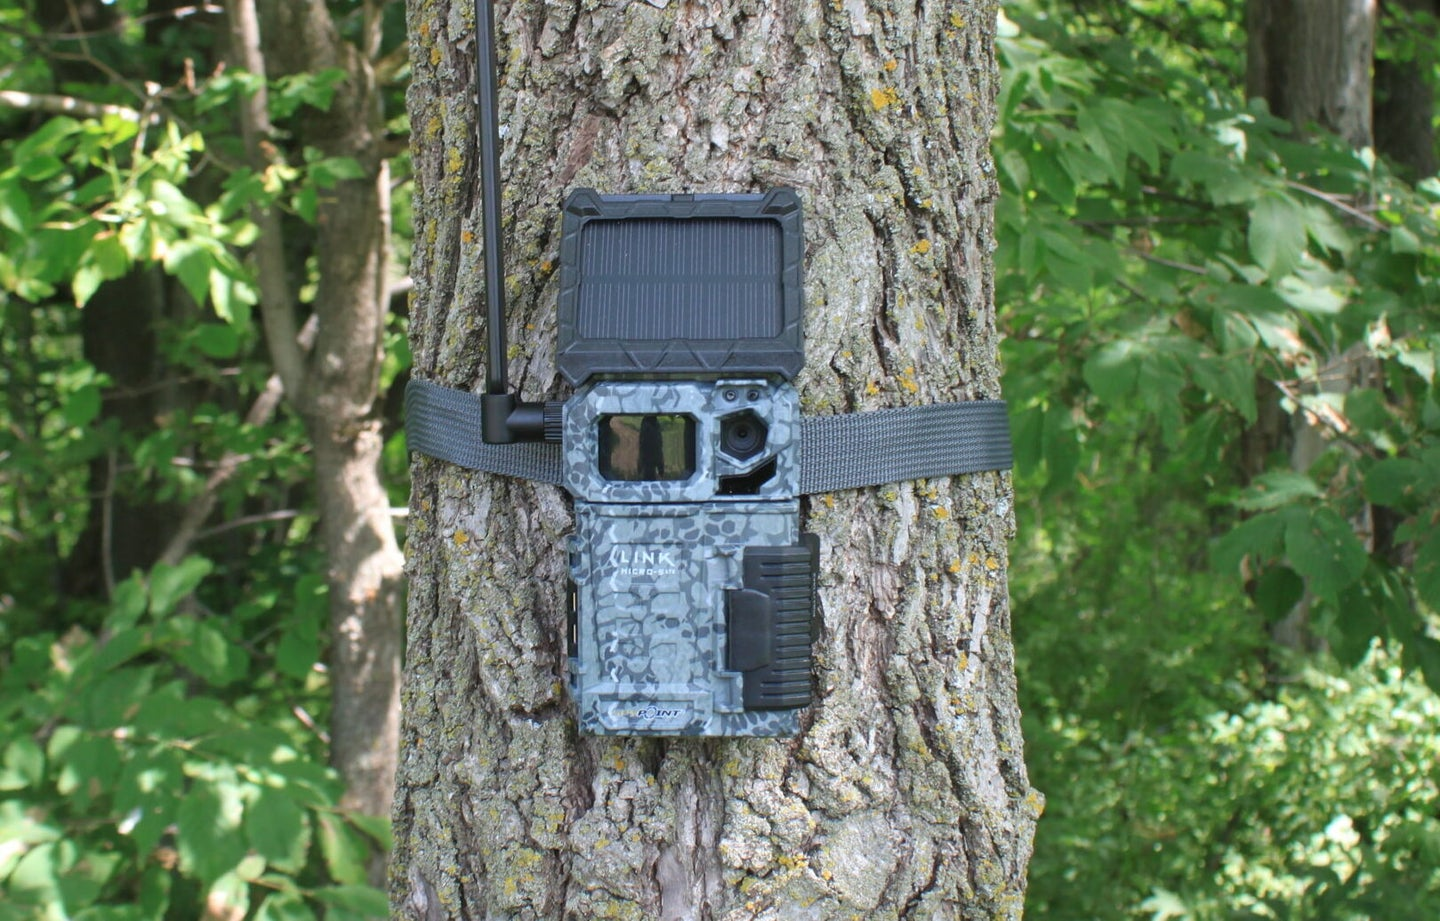 Spypoint Link-Micro-S trail camera